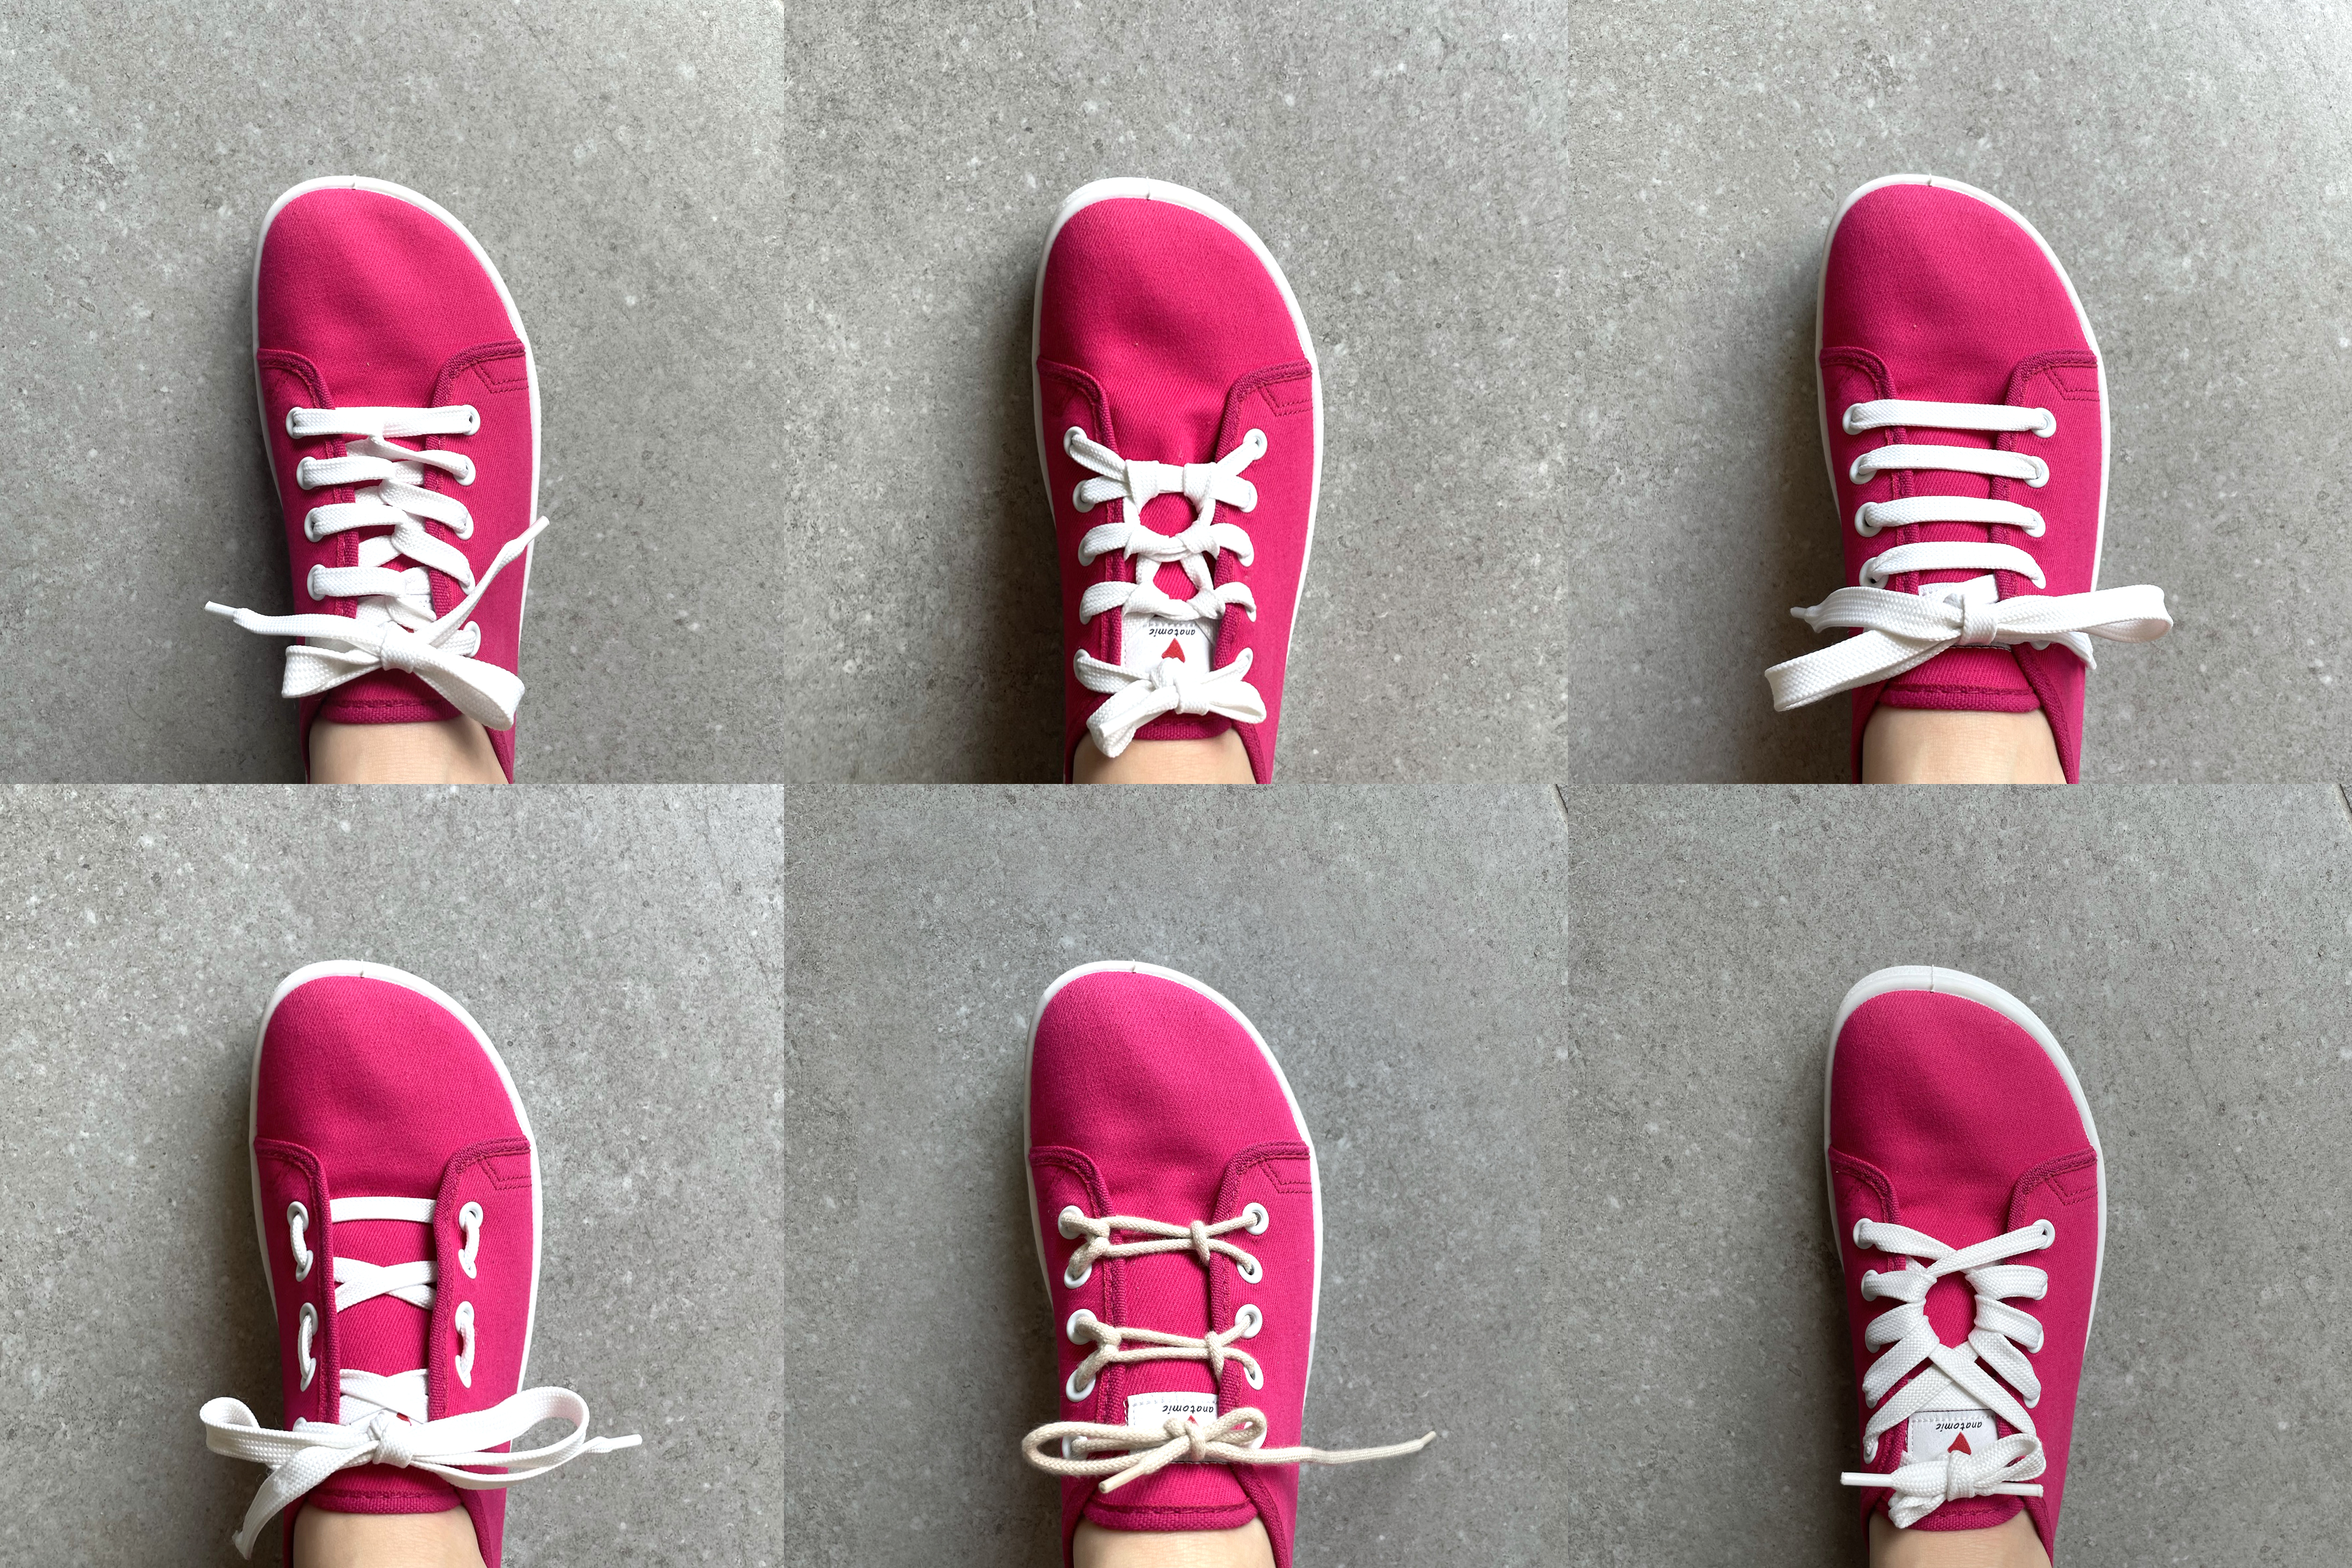 8 tips on how to tie your shoelaces